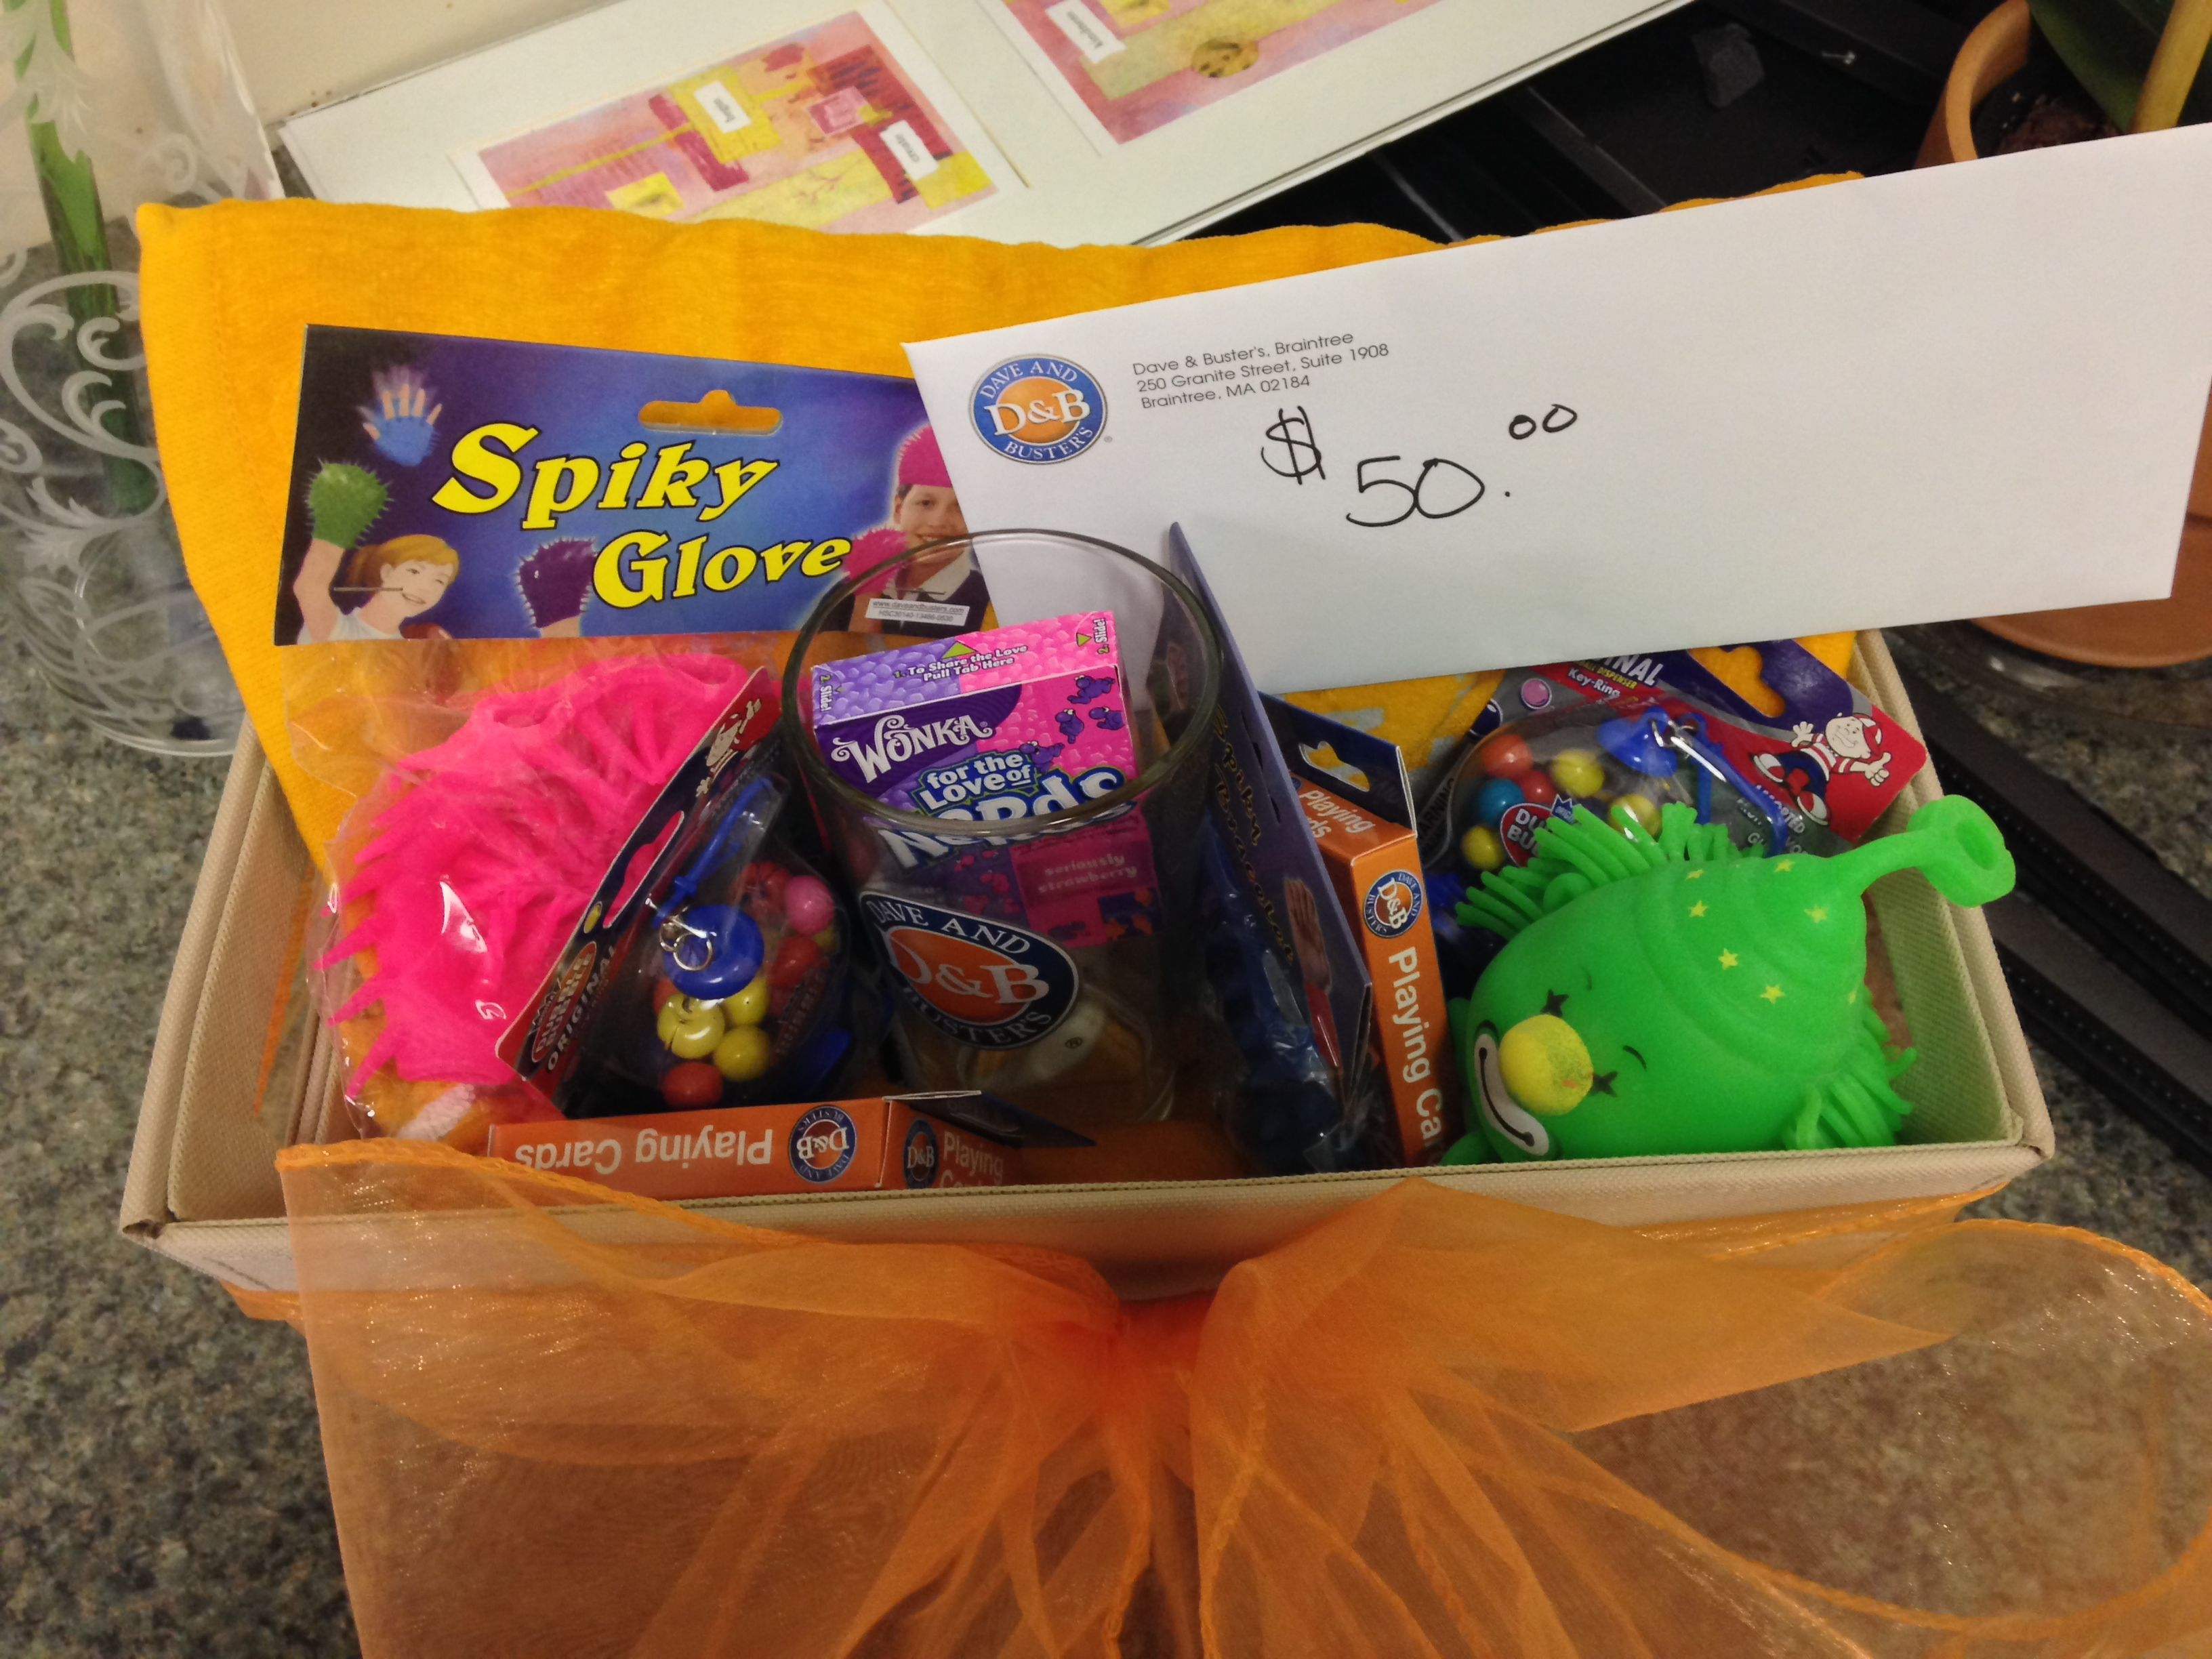 Dave & Busters Gift Basket gives you fun little prizes and candies